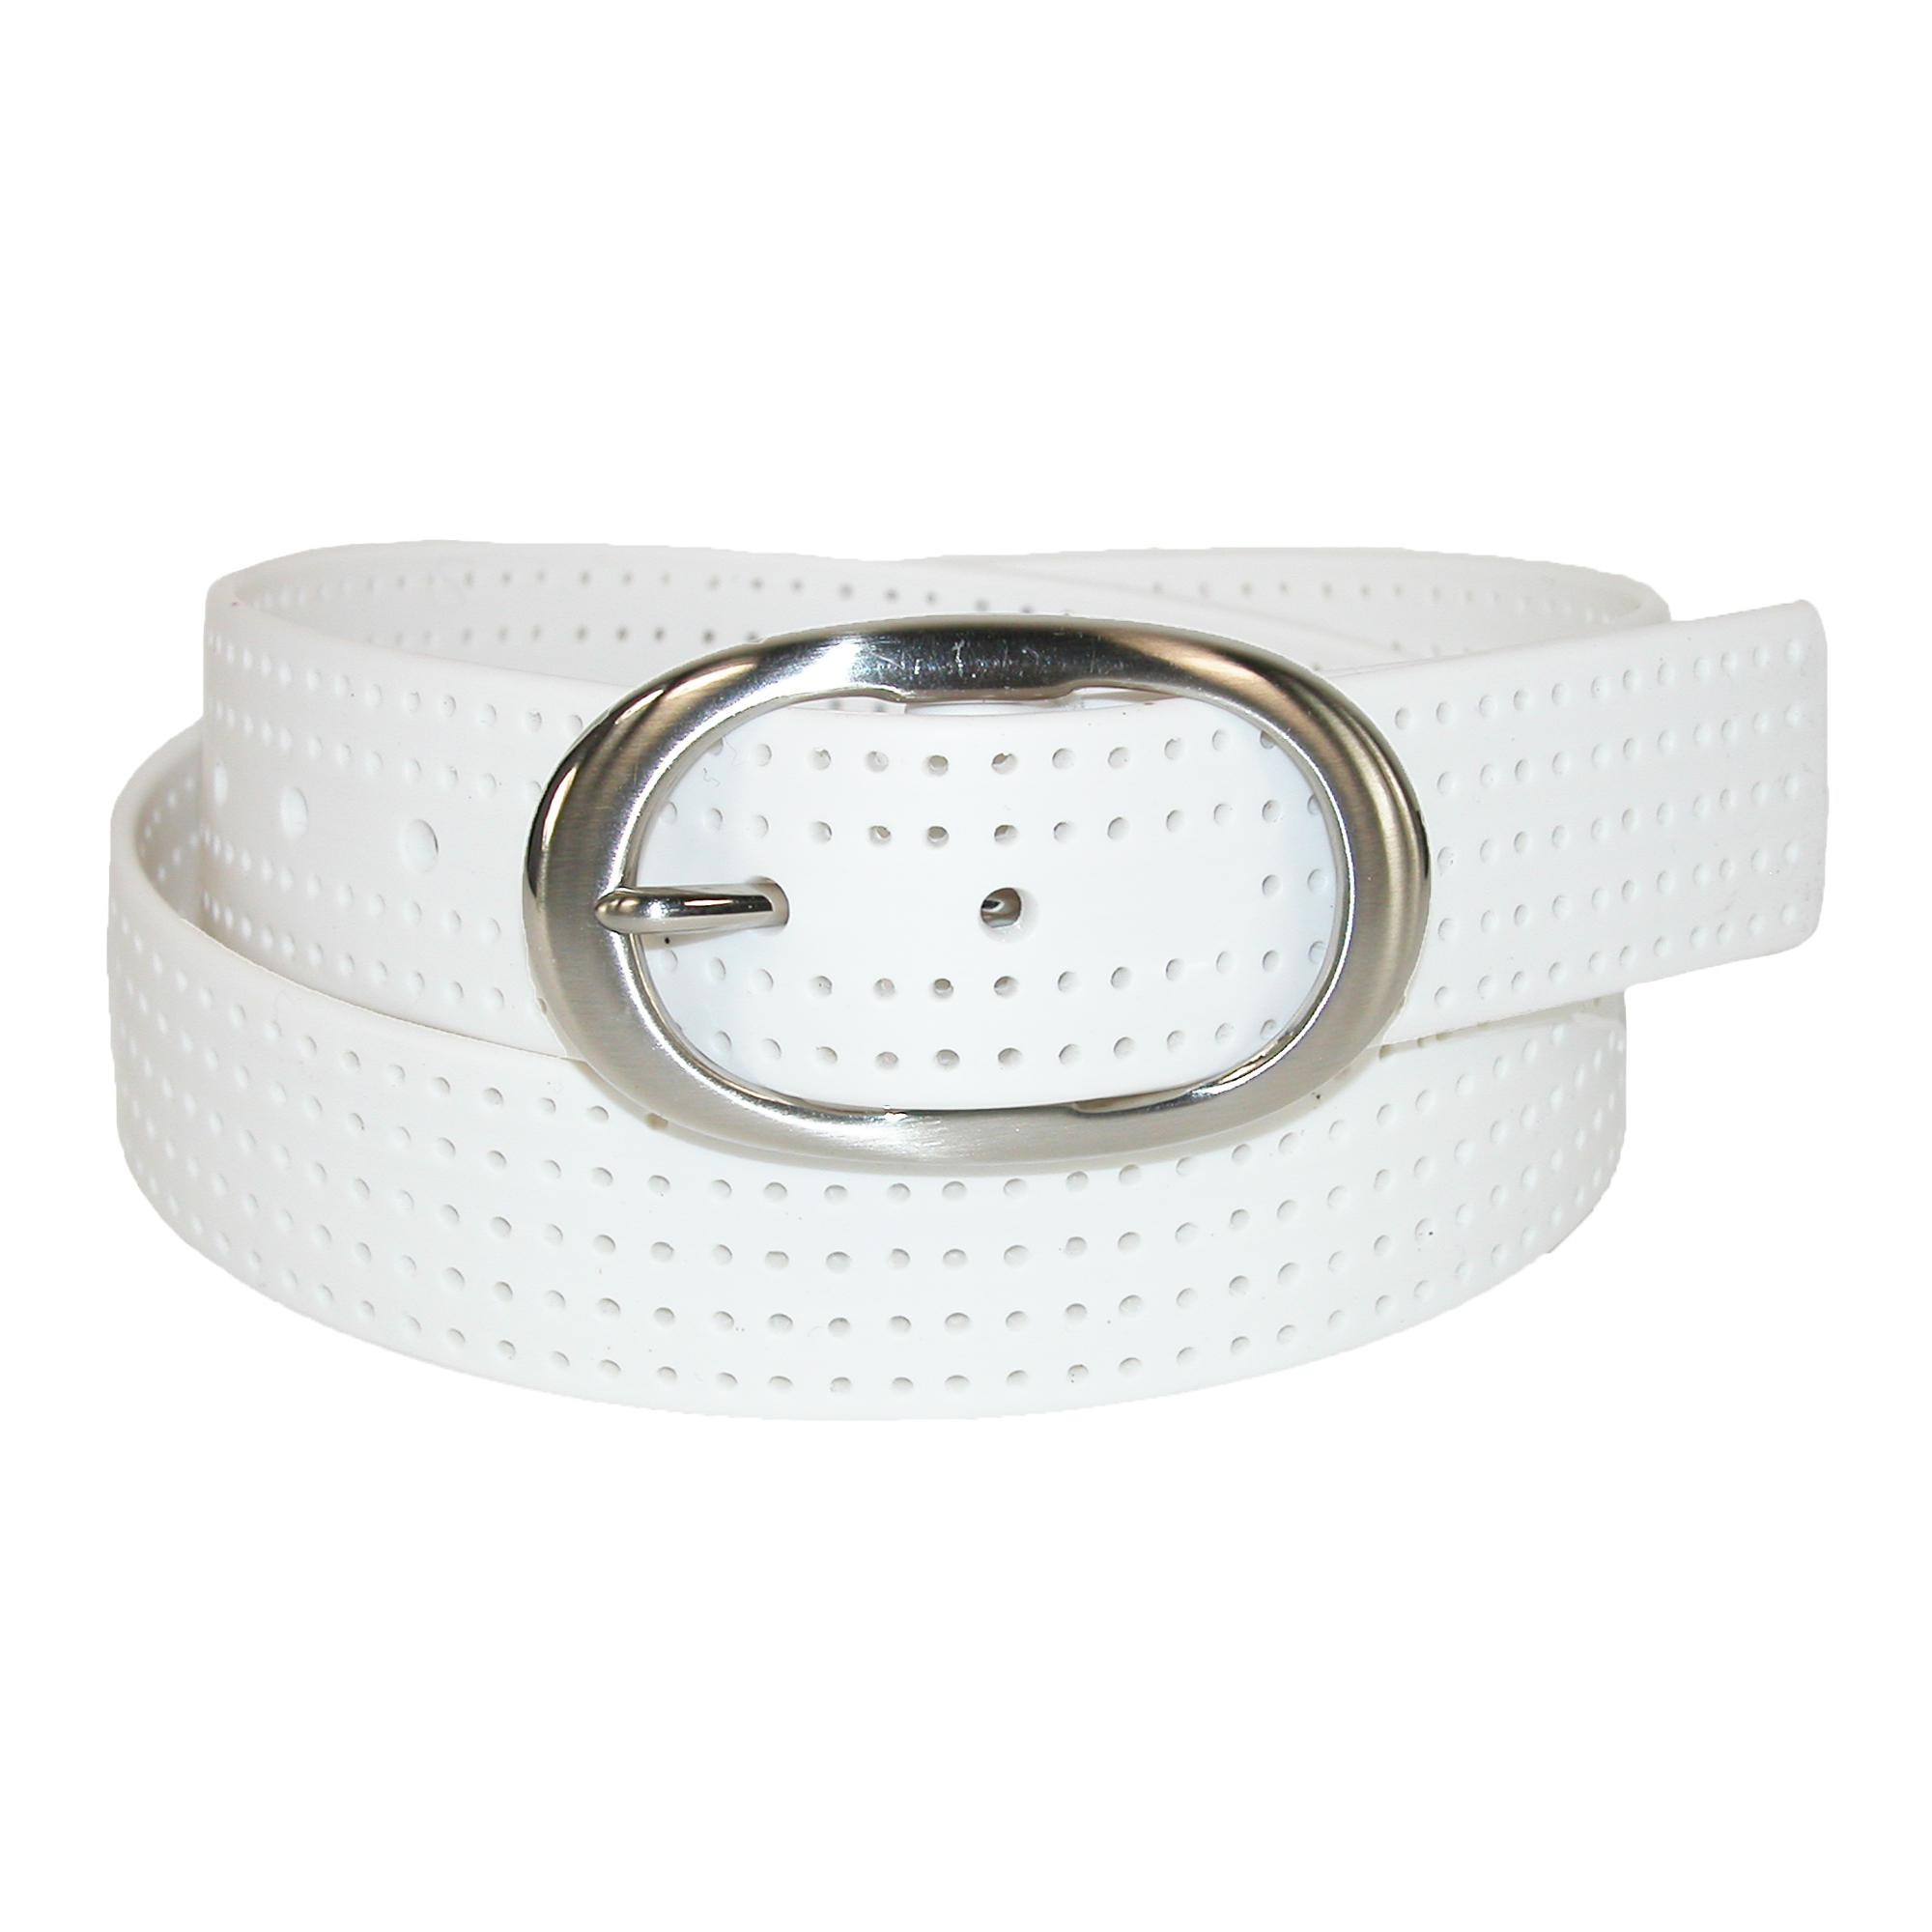 Pga Womens Silicone Perforated Golf Belt With Center Bar Buckle